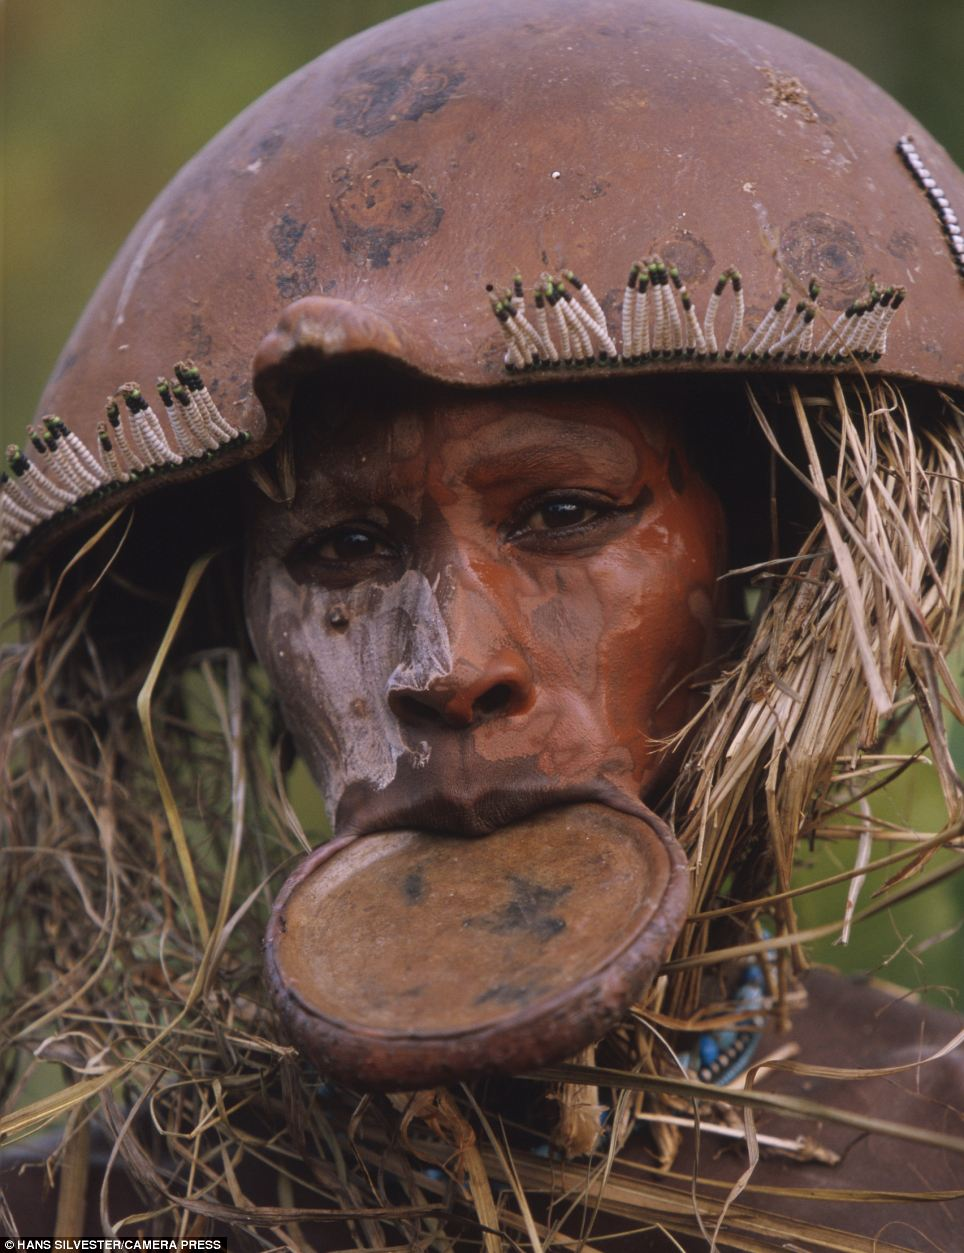 Tribal: This man wears a traditional mouth plate with his straw-covered beaded headdress